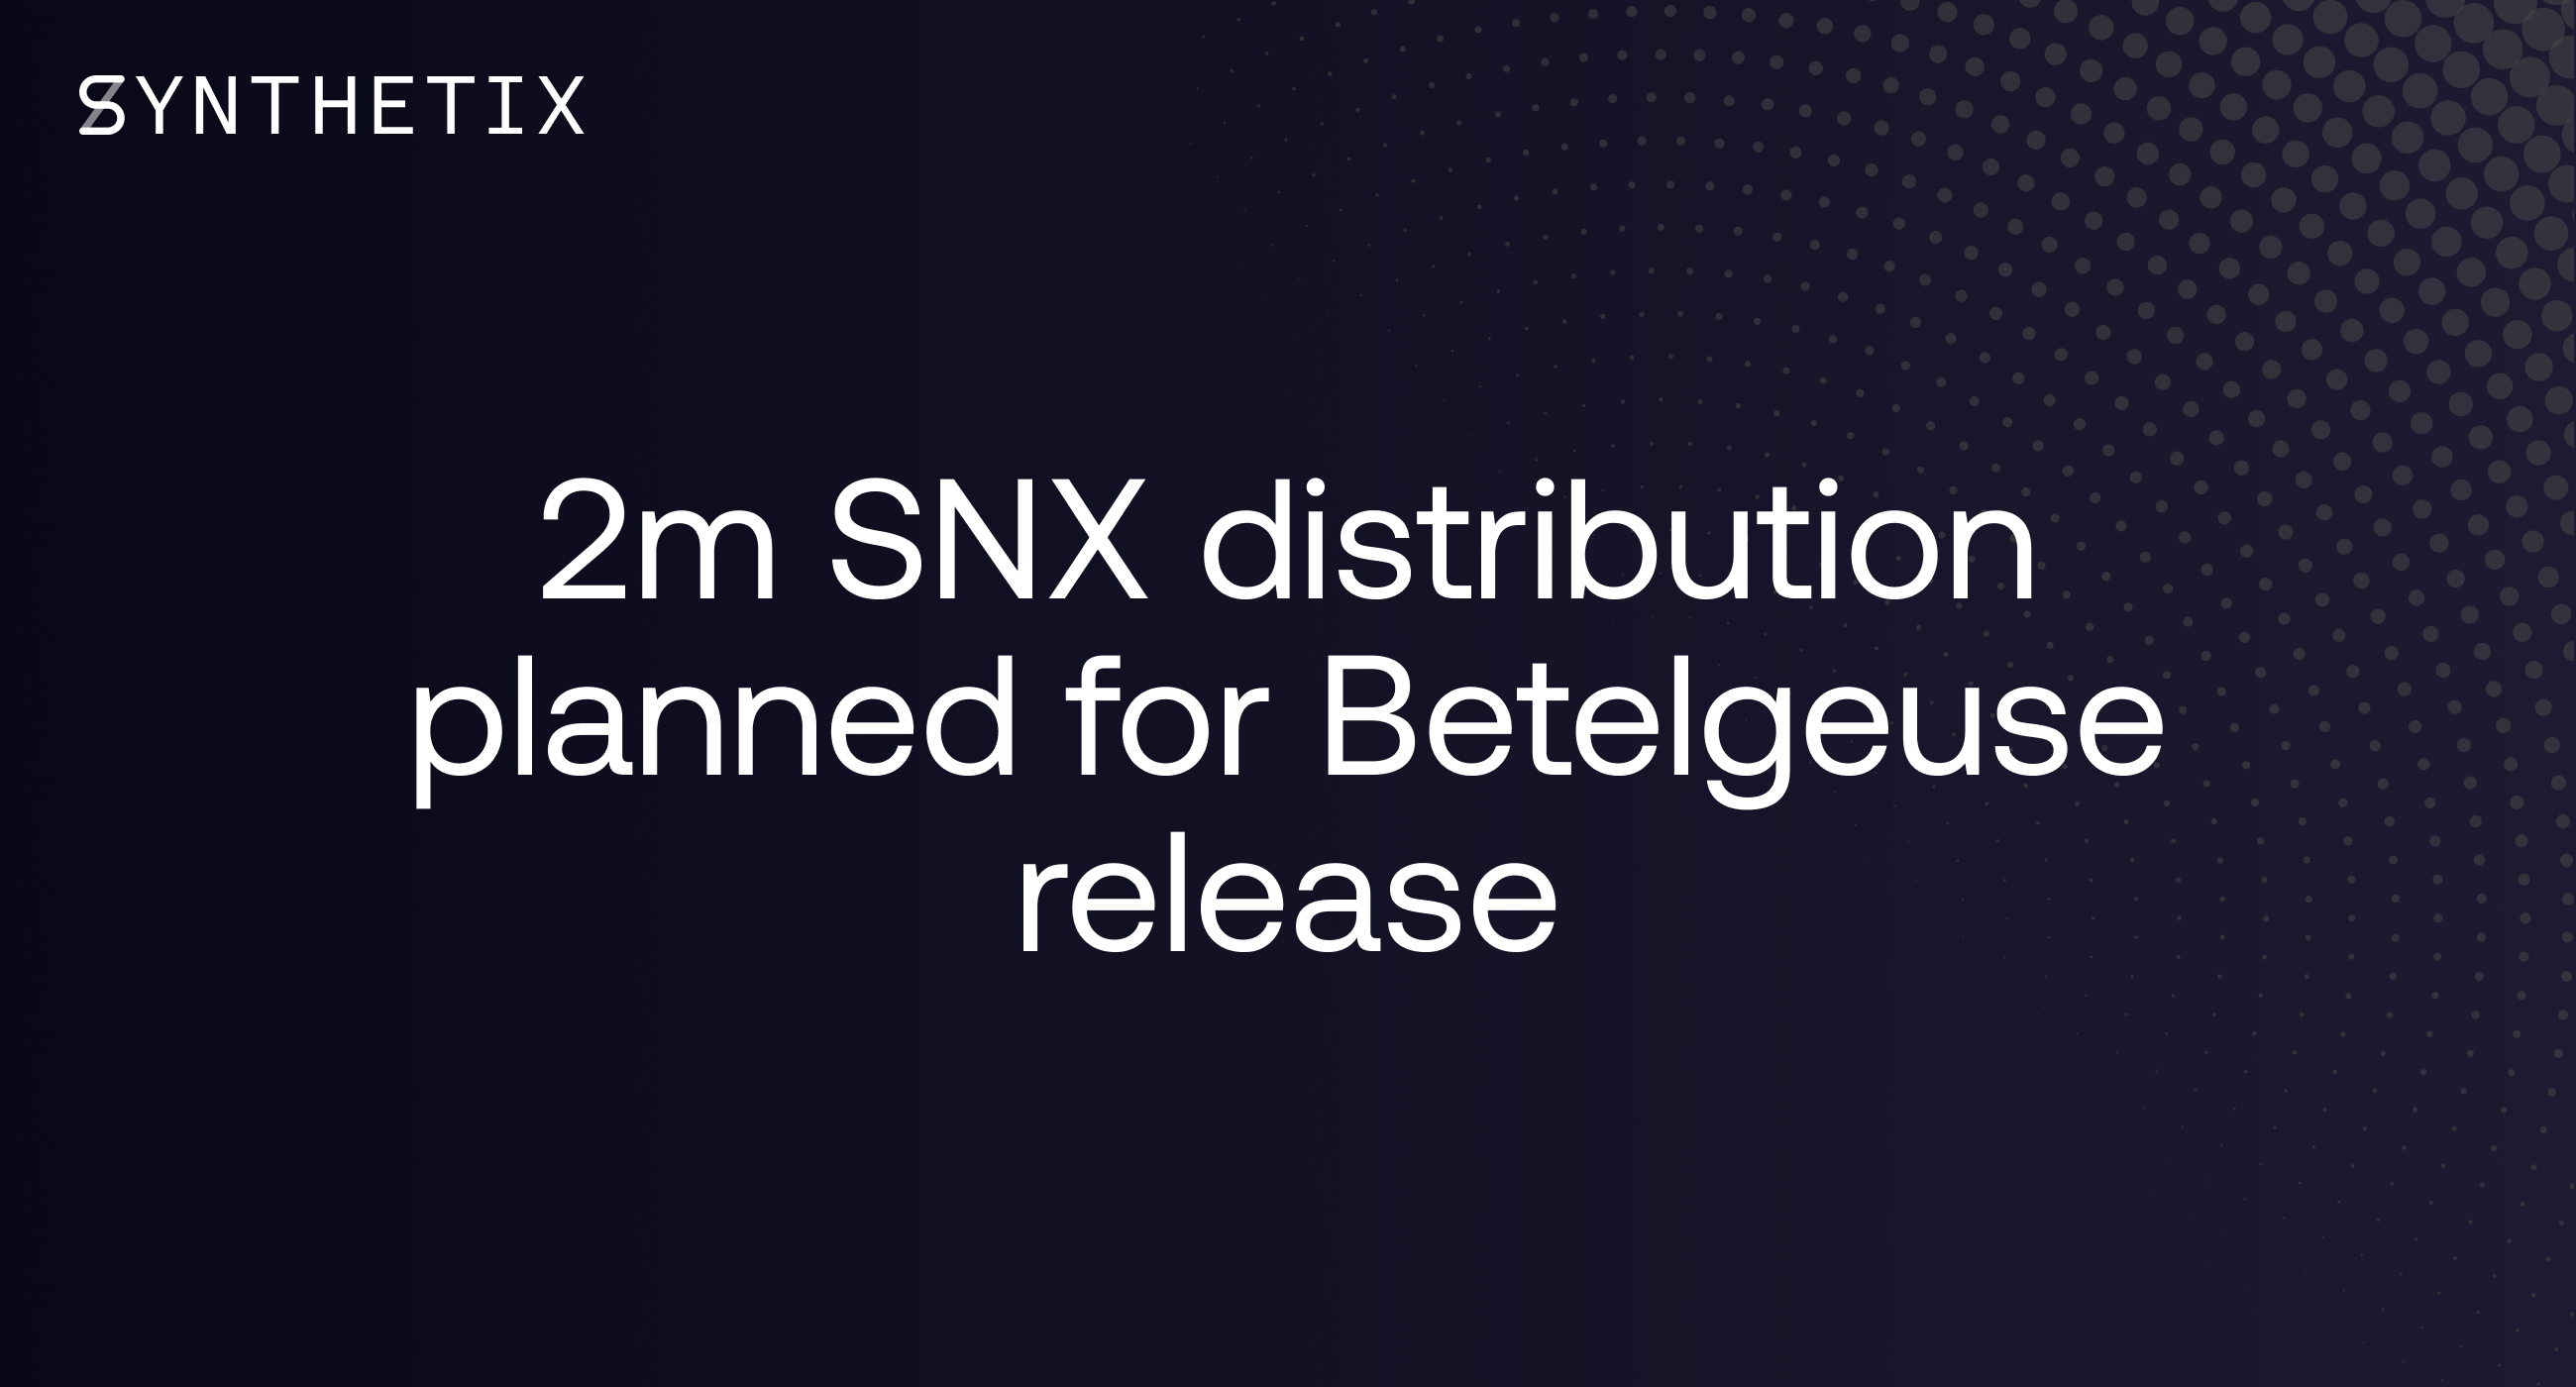 2m SNX distribution planned for Betelgeuse release